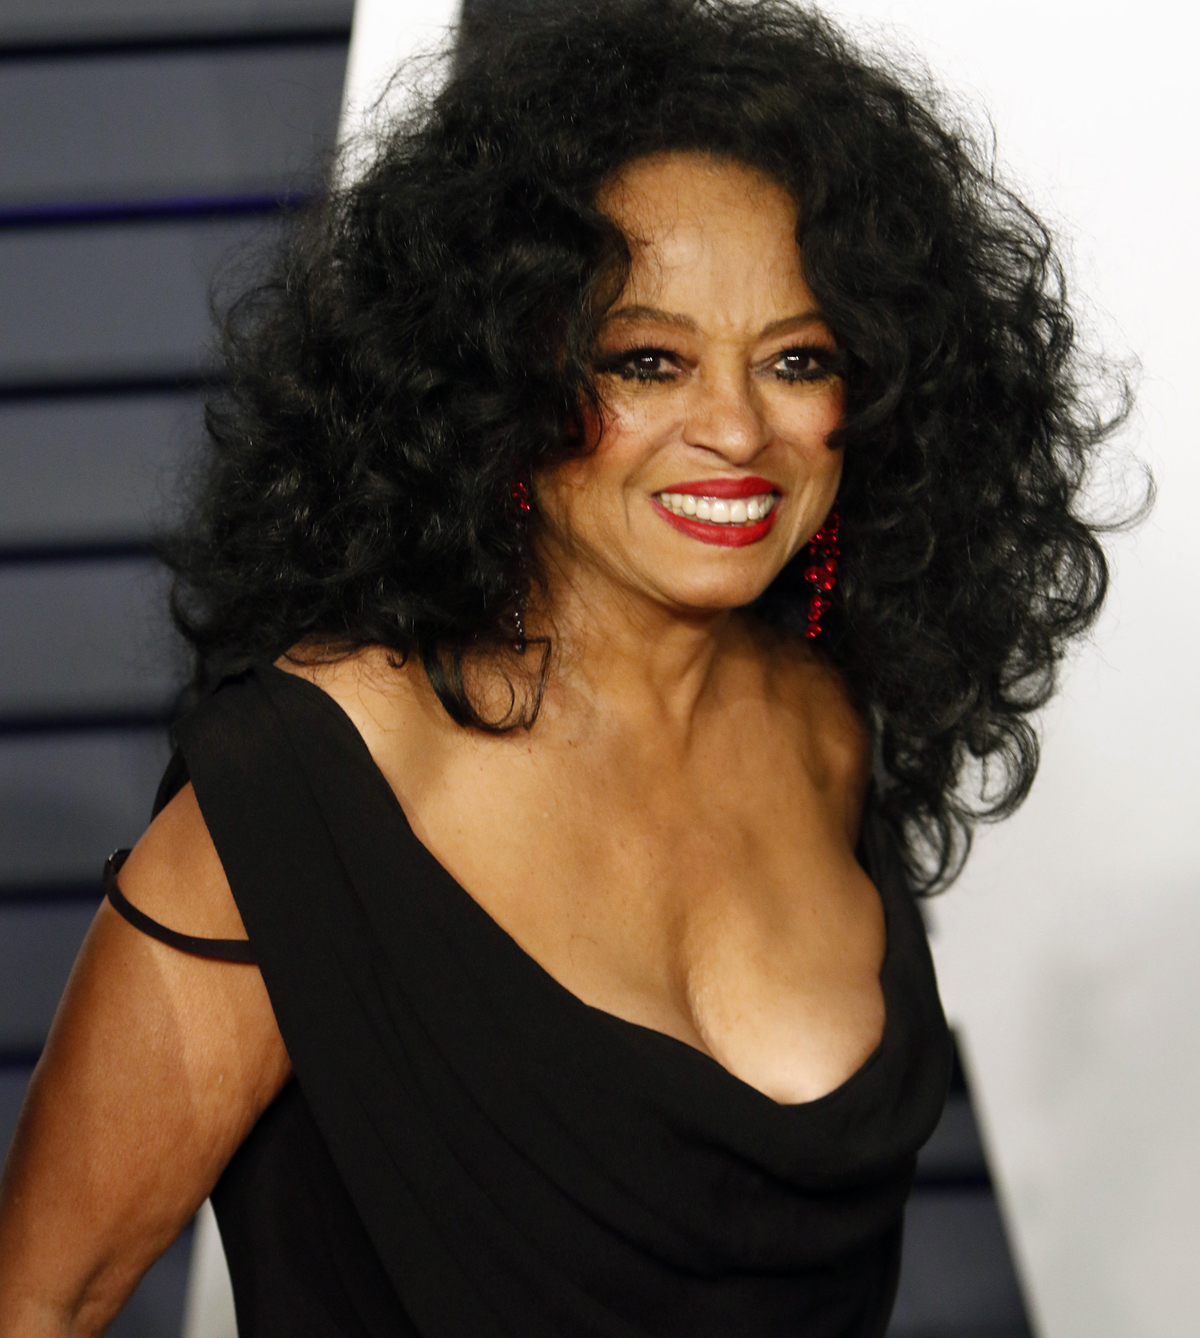 diana ross message to michael jackson critics stop in the name of love perez hilton diana ross message to michael jackson critics stop in the name of love perez hilton